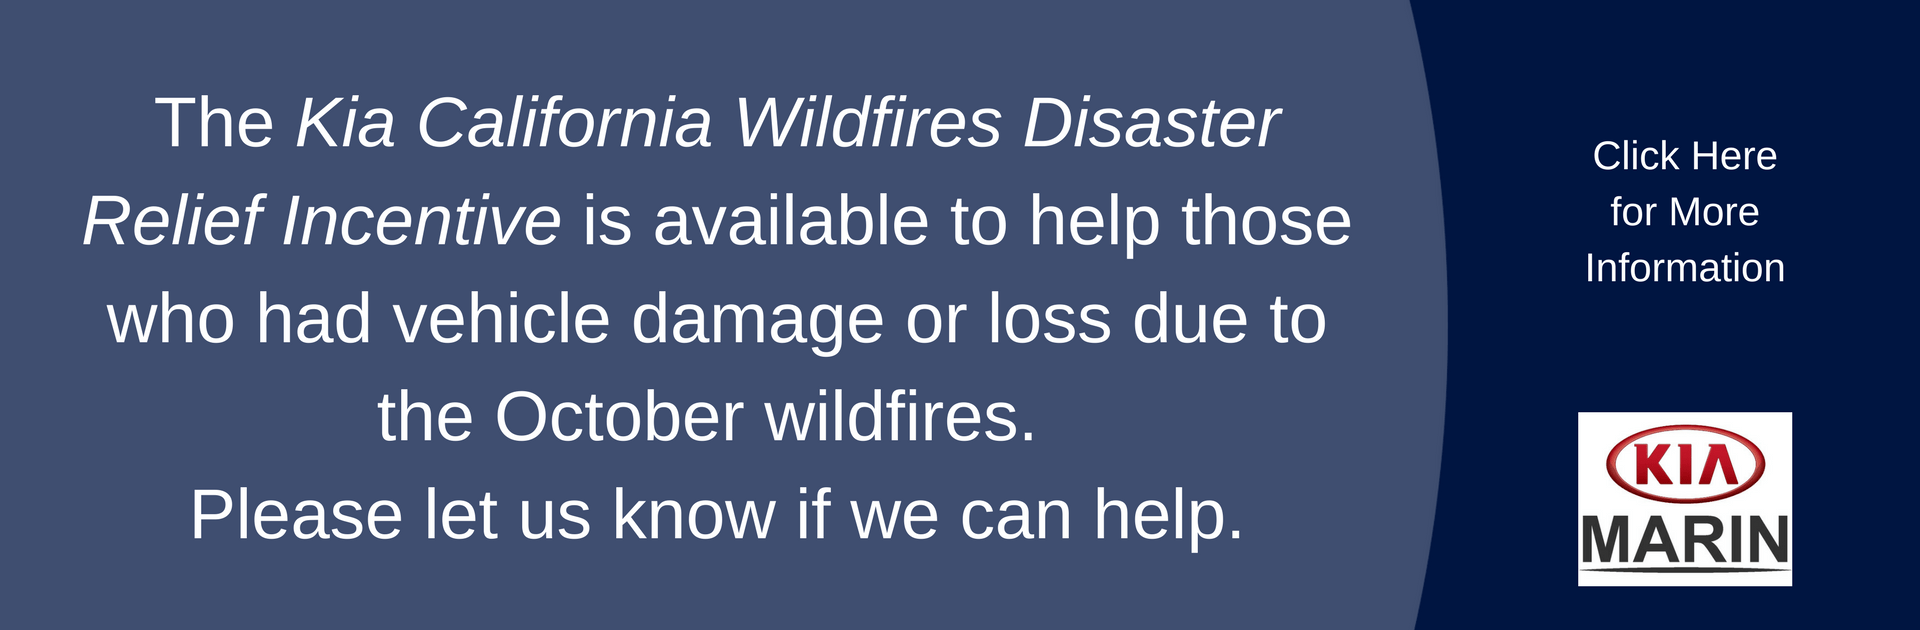 Kia Wildfire Relief